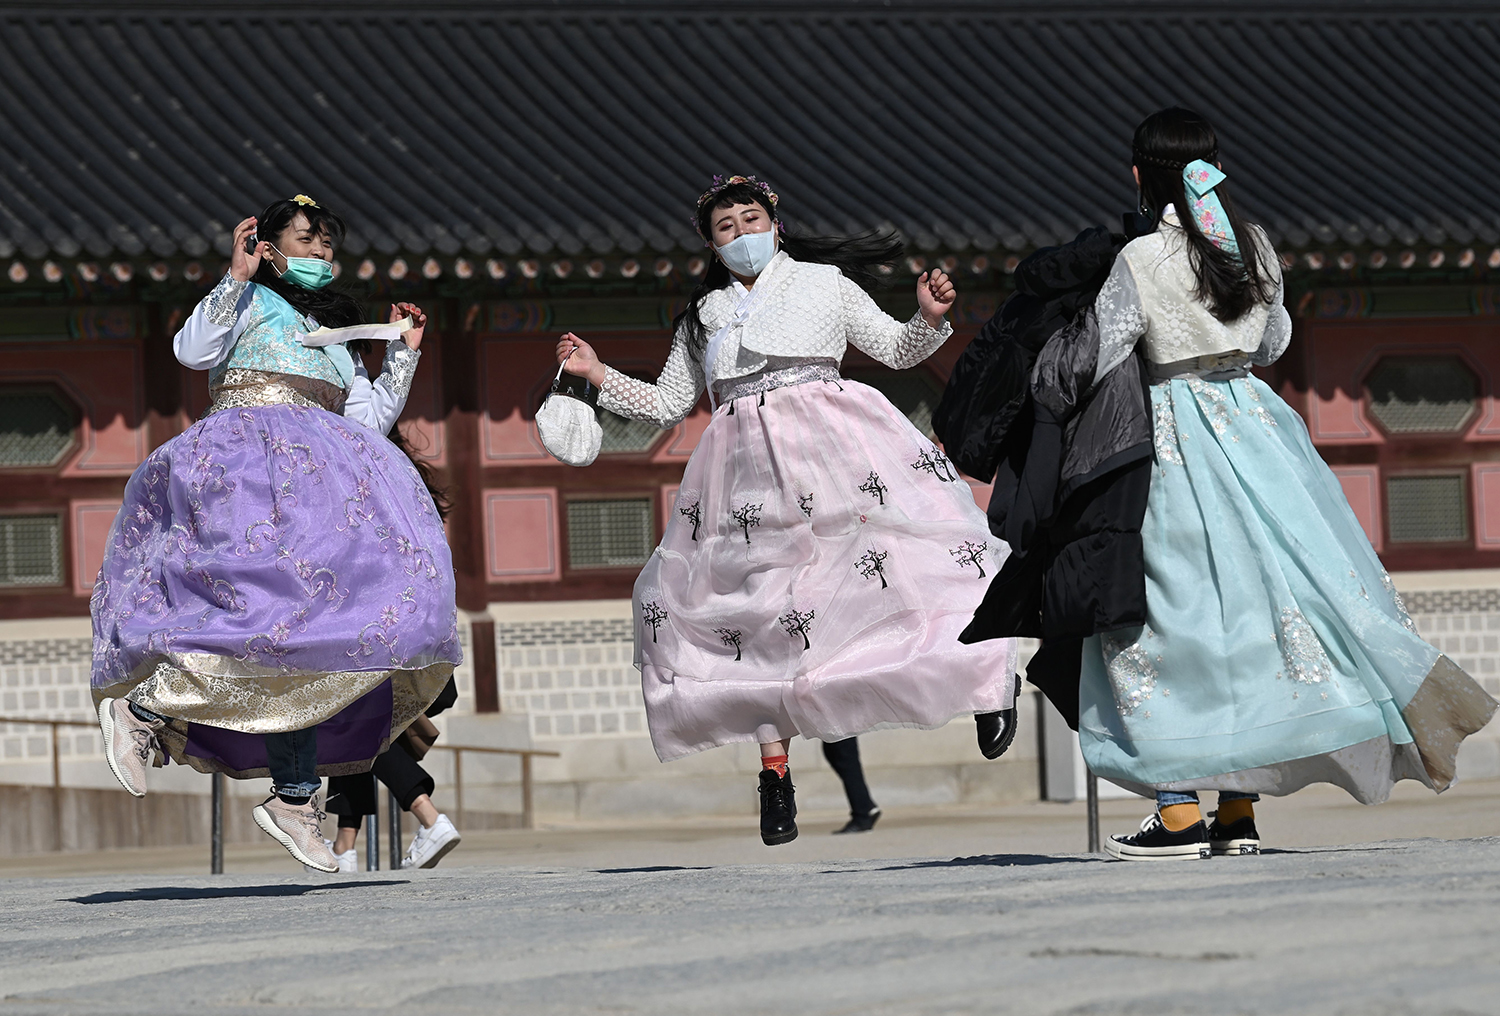 People in traditional Korean hanbok dresses wear face masks as they jump for a souvenir picture at Gyeongbokgung palace in Seoul on Feb. 3. JUNG YEON-JE/AFP via Getty Images